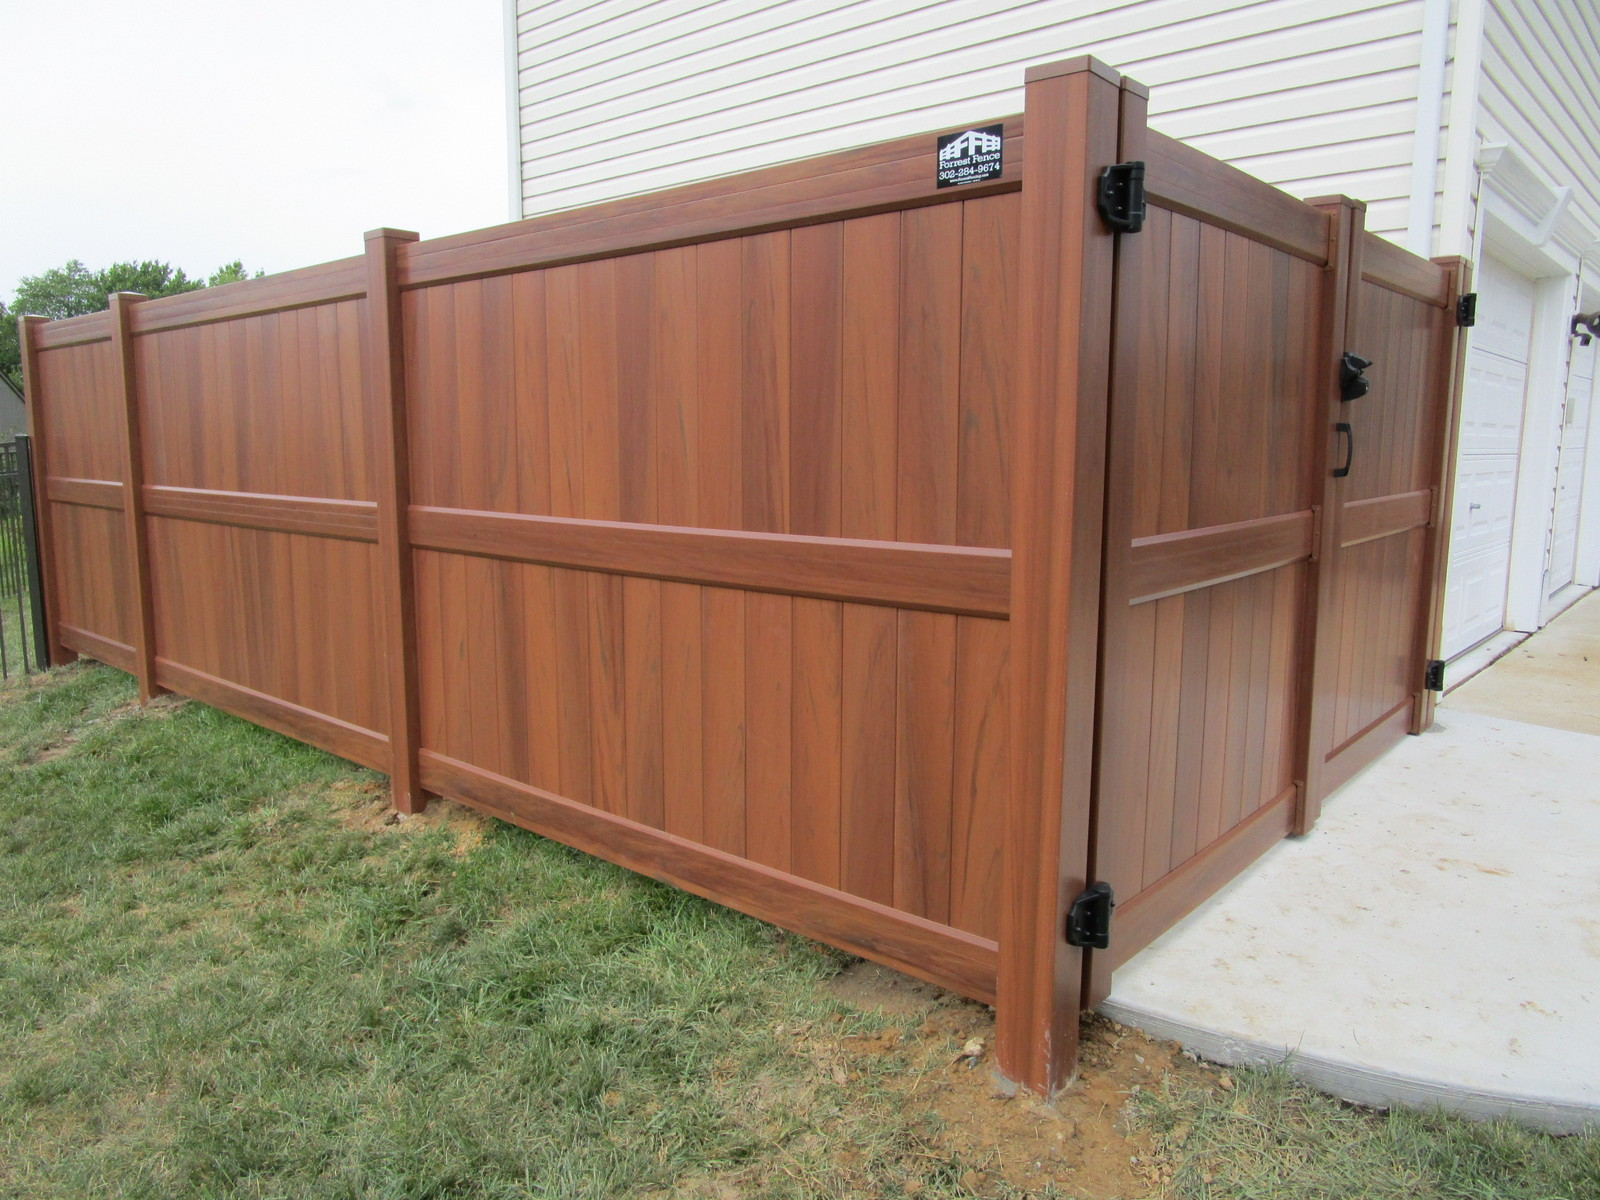 Vinyl Forrest Fencing Fence Gate For Transitional Putting Up Electric 104 Privacy Mocha Walnut Penndel With Optional Mid Rail